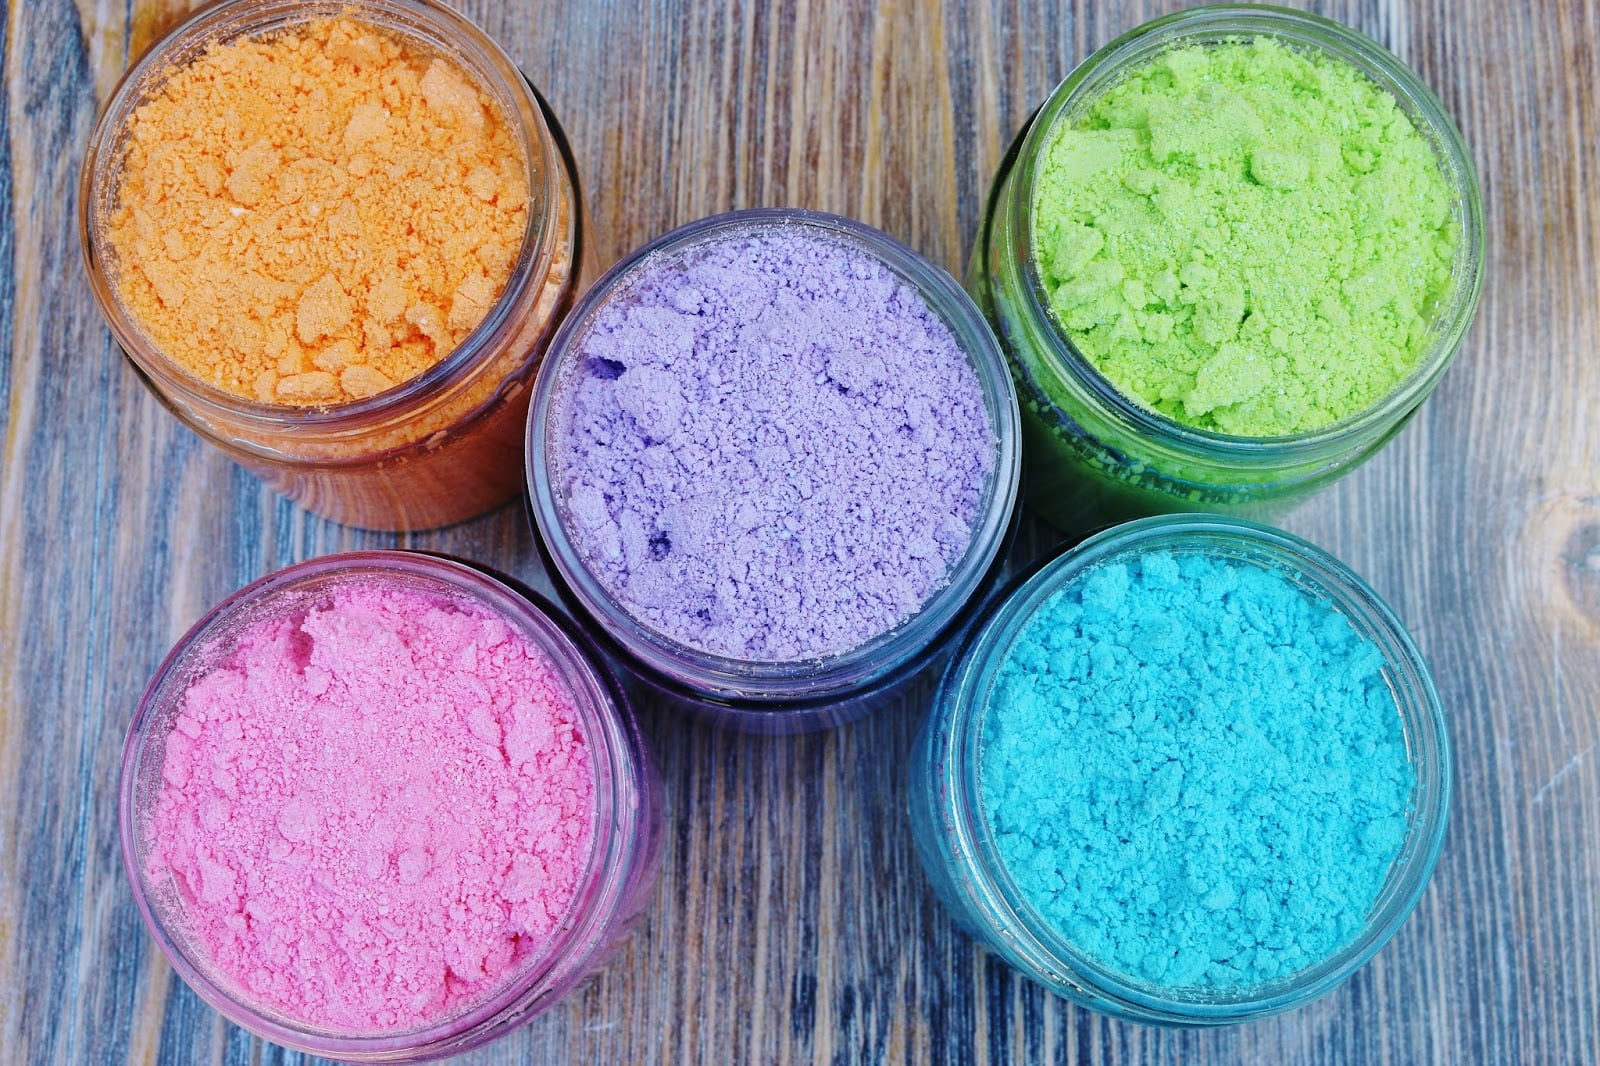 My Simple Modest Chic  Diy Color Powder For A Color Fight!